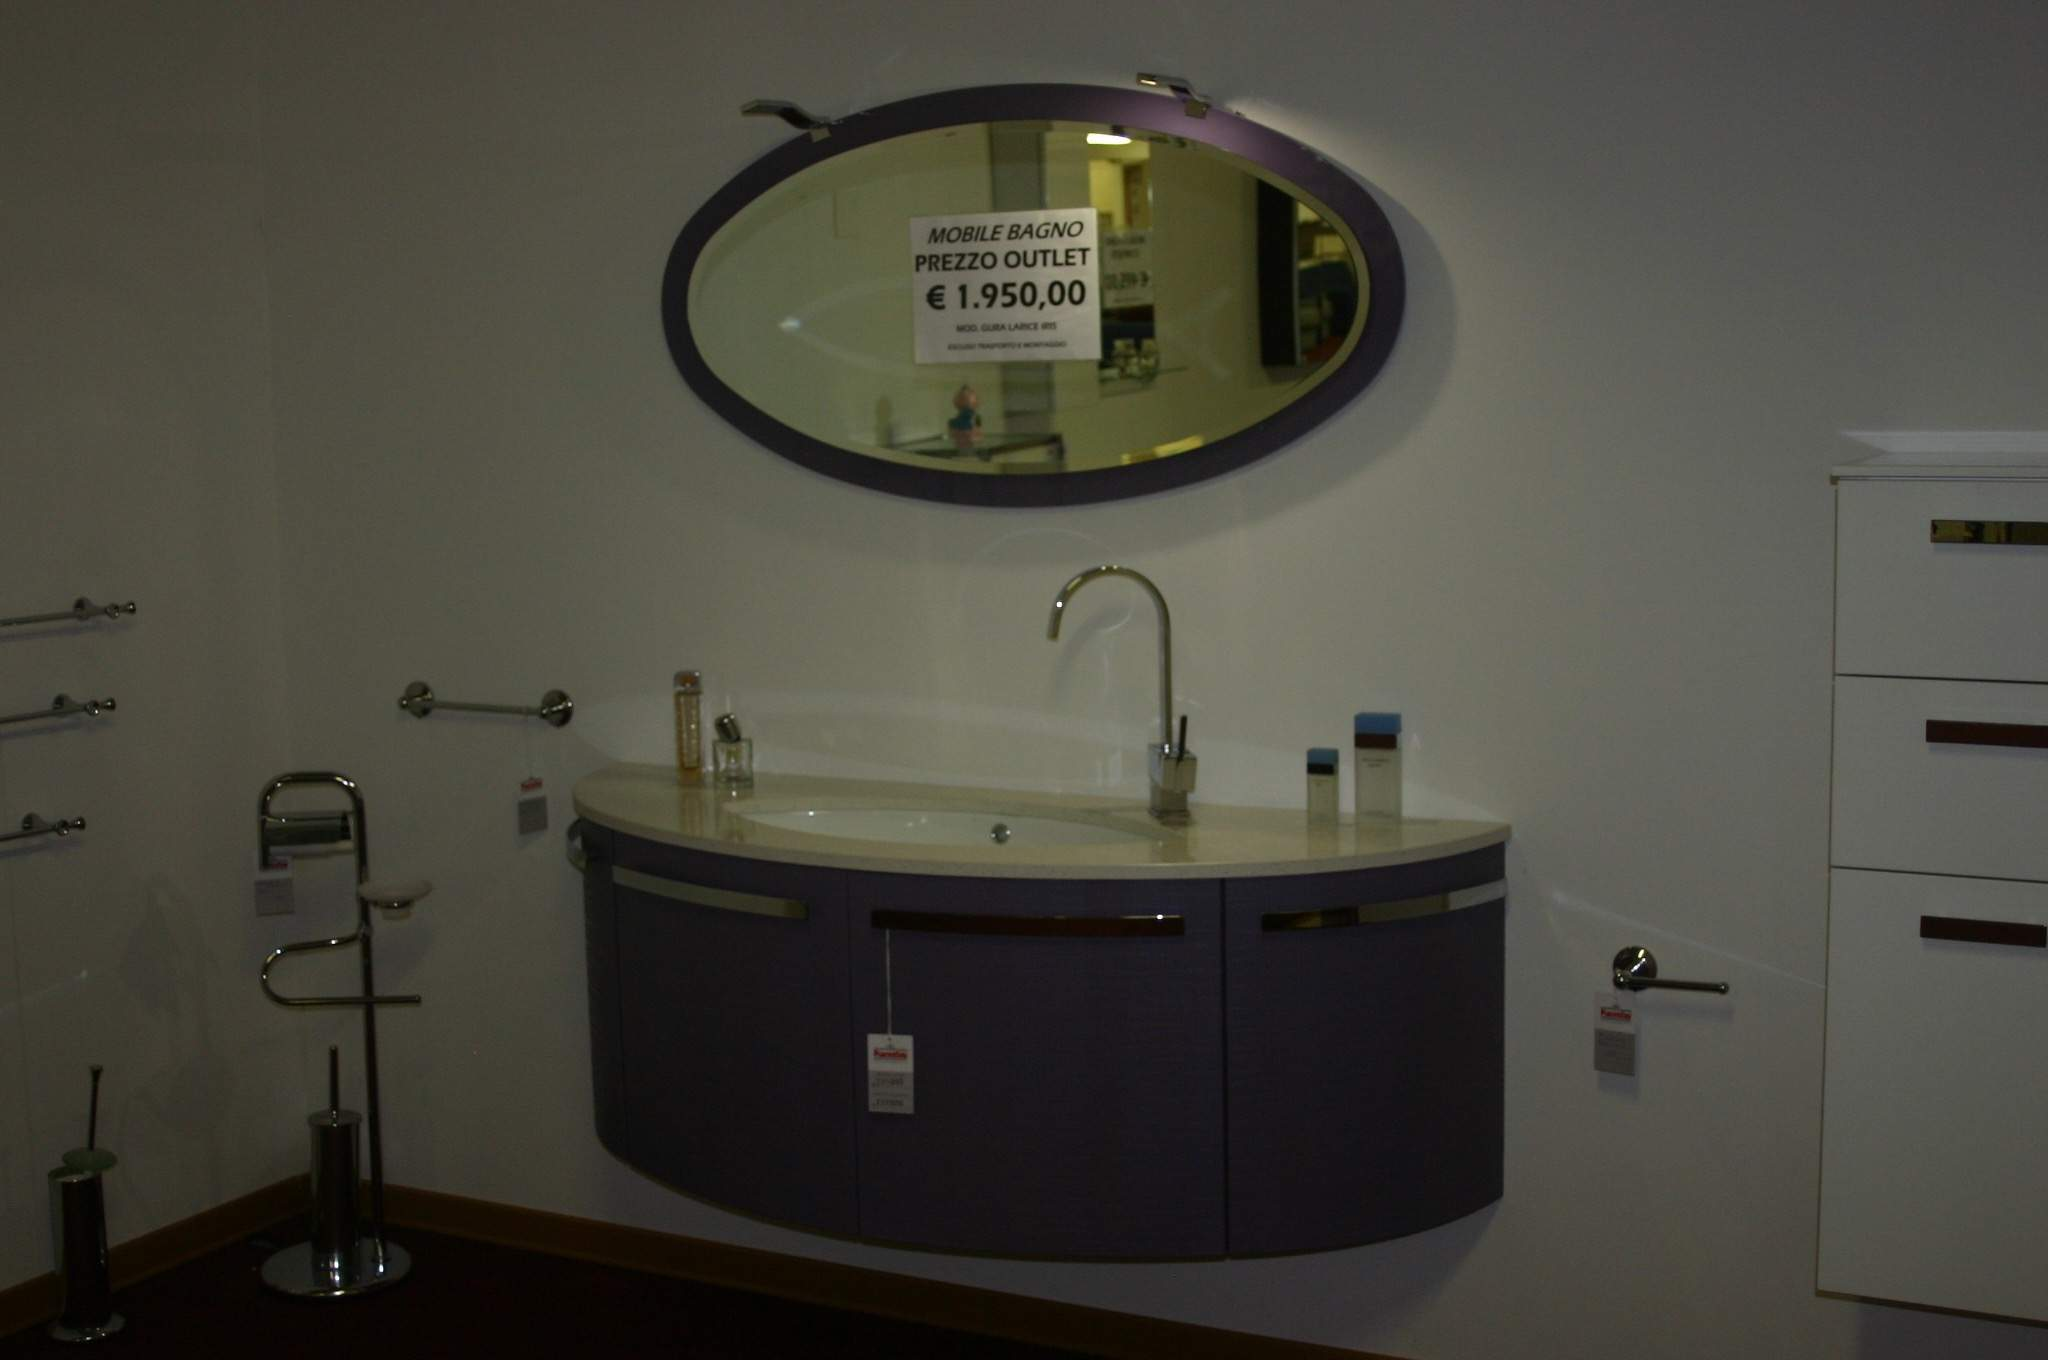 Outlet mobili bagno affordable cecchetti arredamenti a for Cecchetti arredamenti